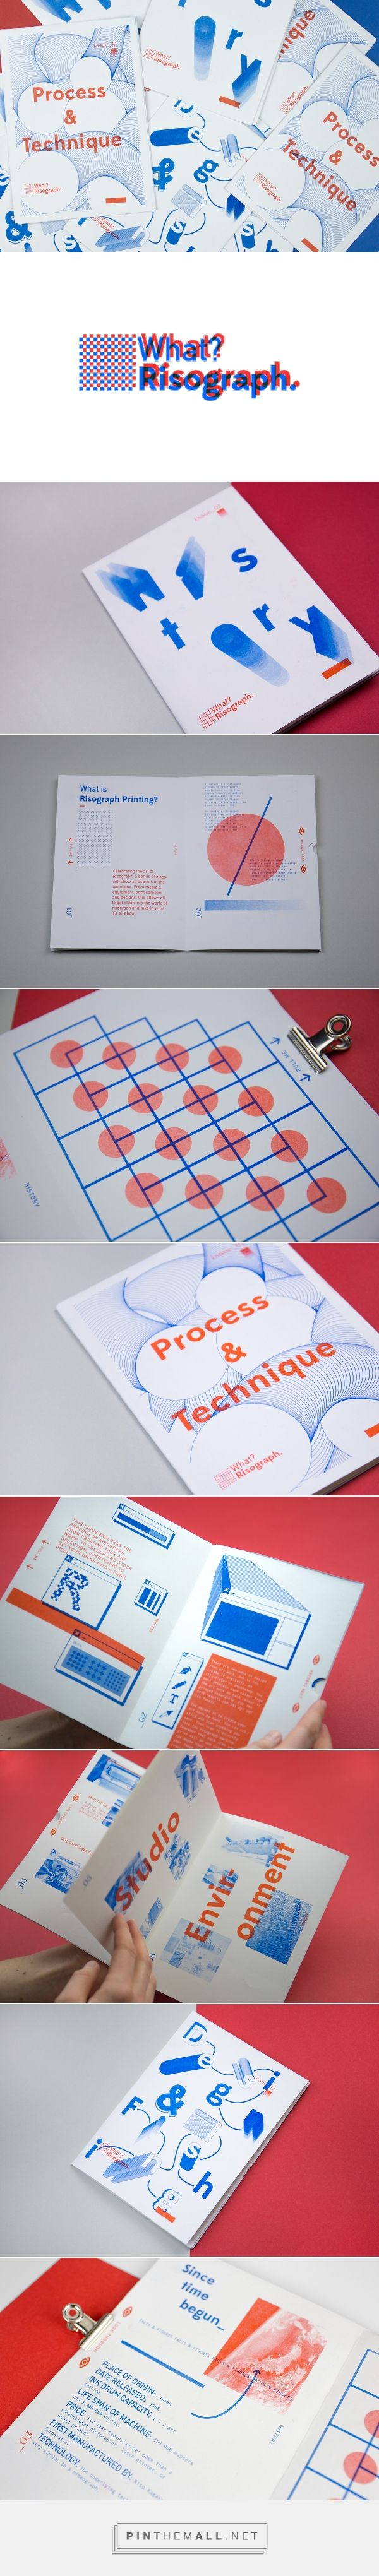 What? Risograph - Zine & Website on Behance - created via https://pinthemall.net